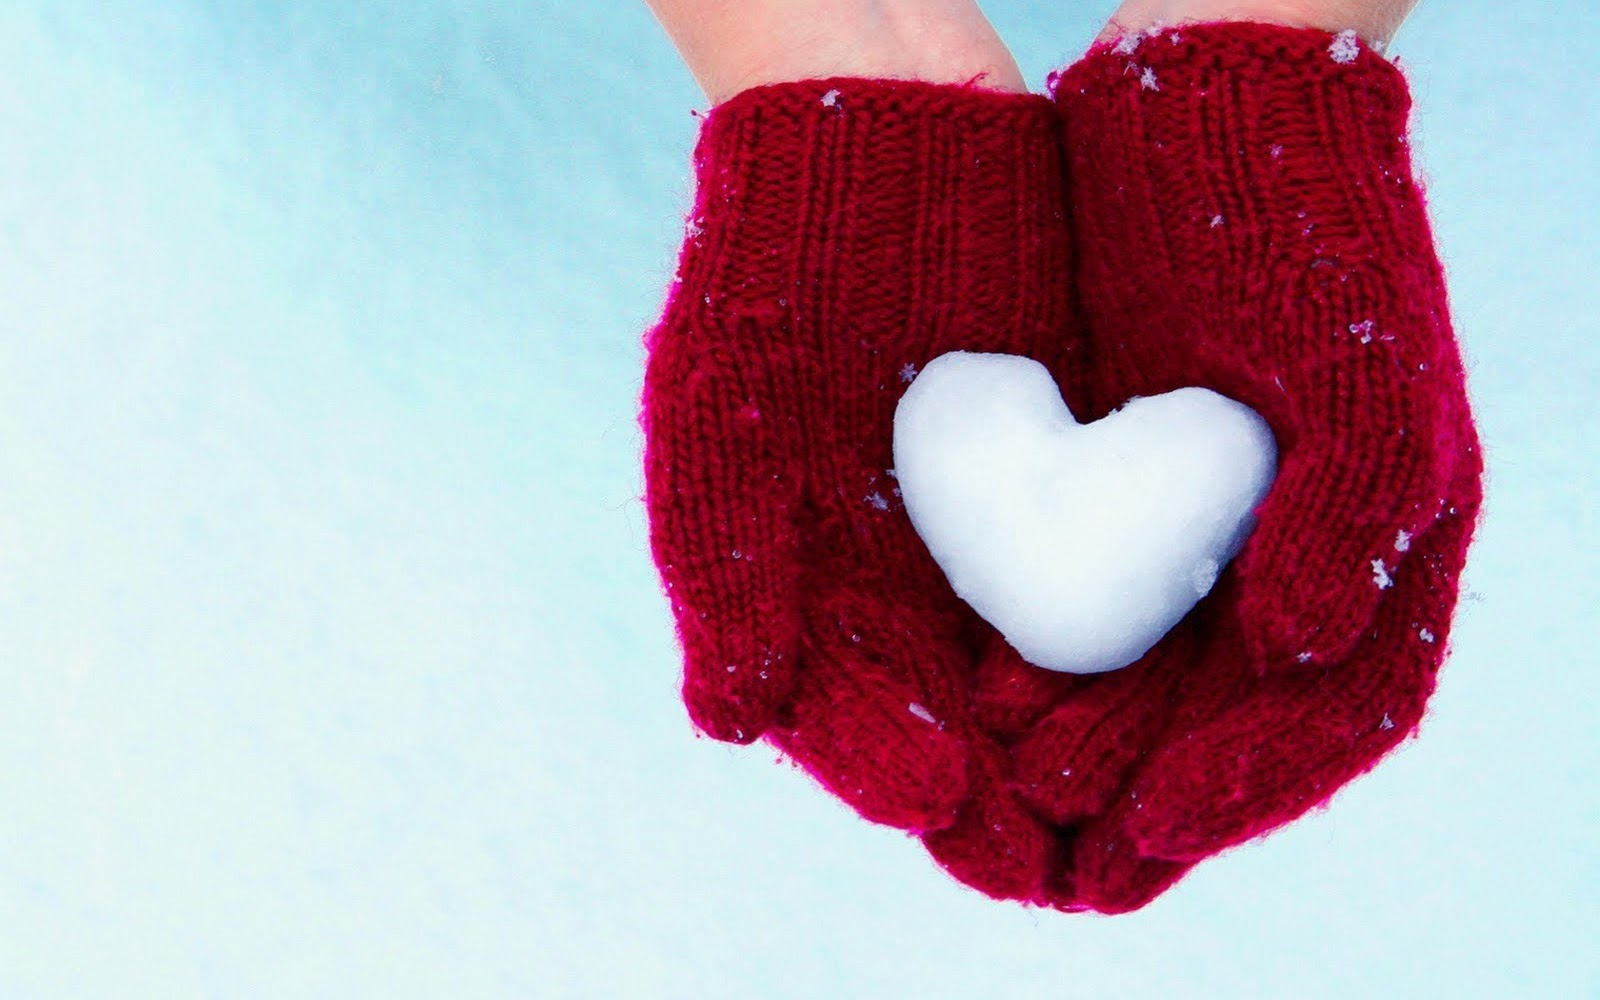 Love Wallpaper In Hand : Hands Gloves Heart Snow Winter HD Wallpaper Love Wallpapers Romantic Wallpapers - Stock ...